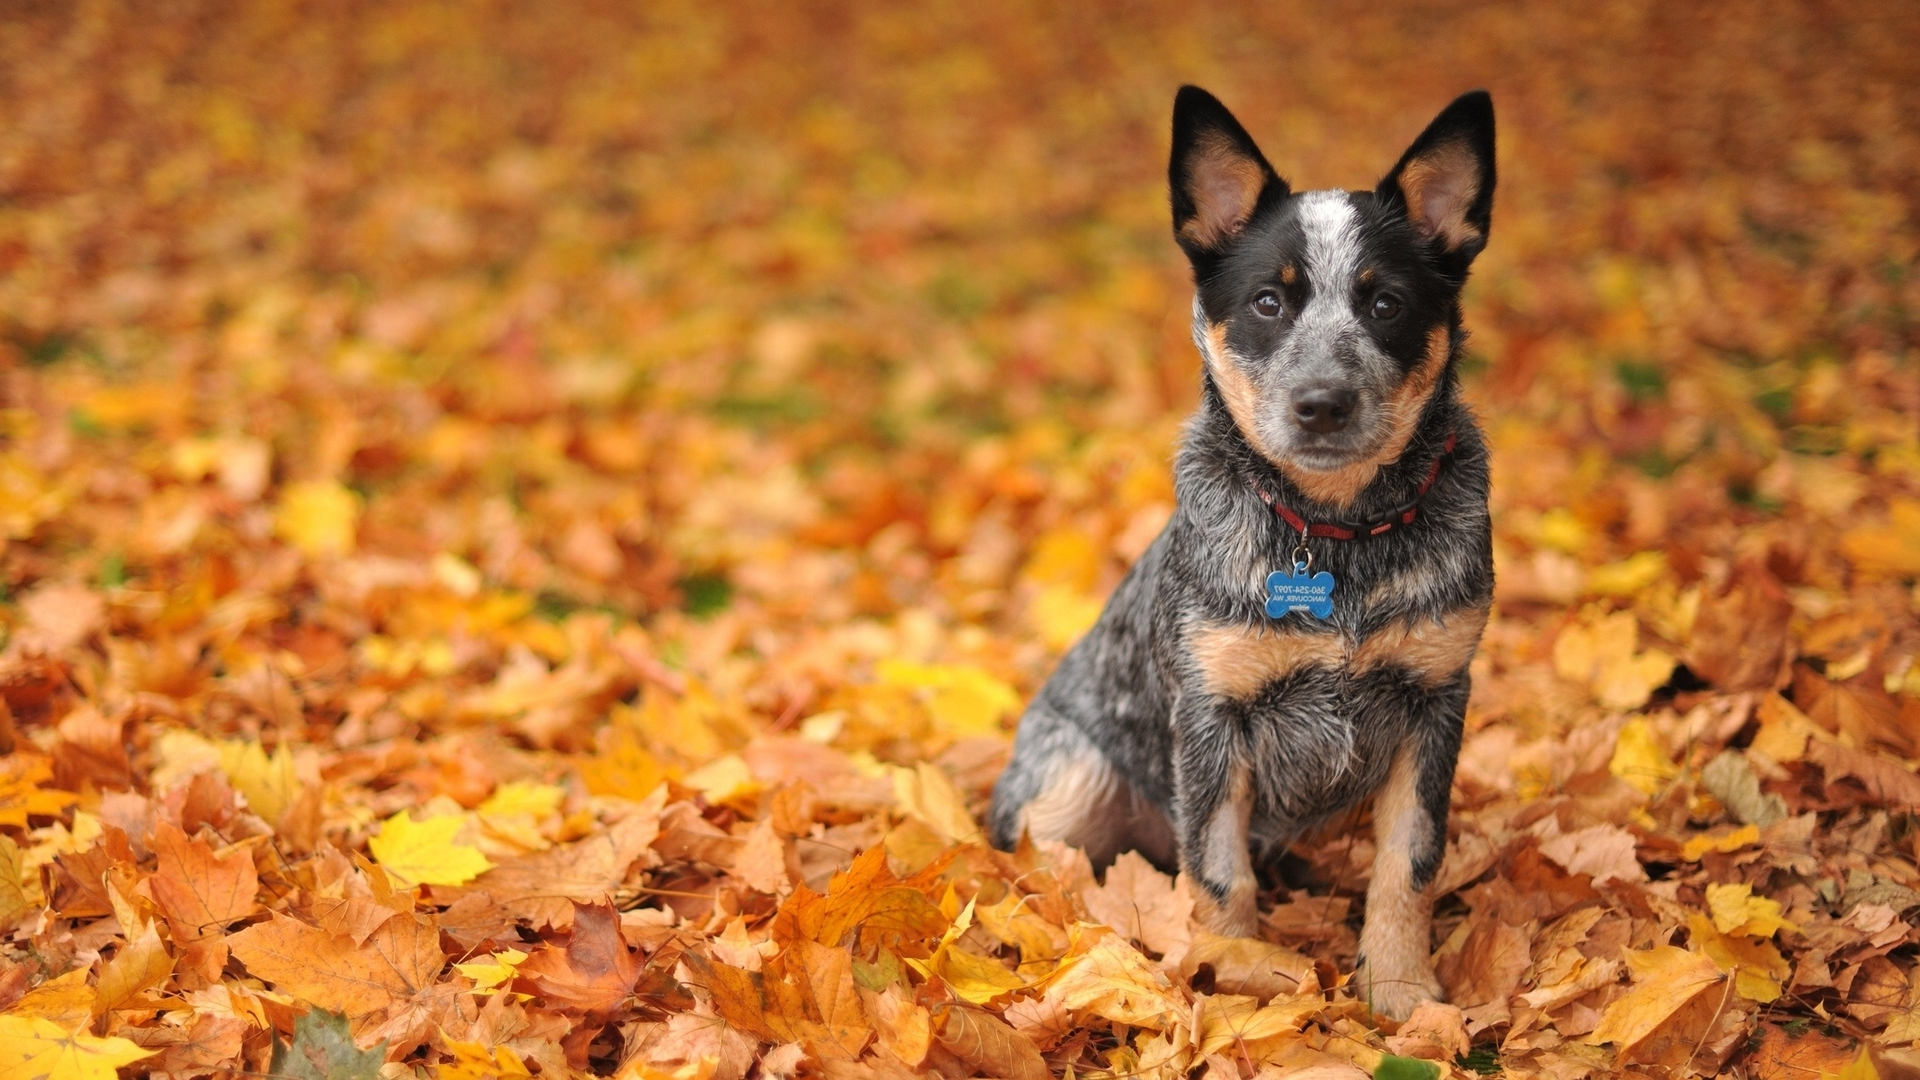 47+] Free Fall Wallpaper with Dogs on WallpaperSafari